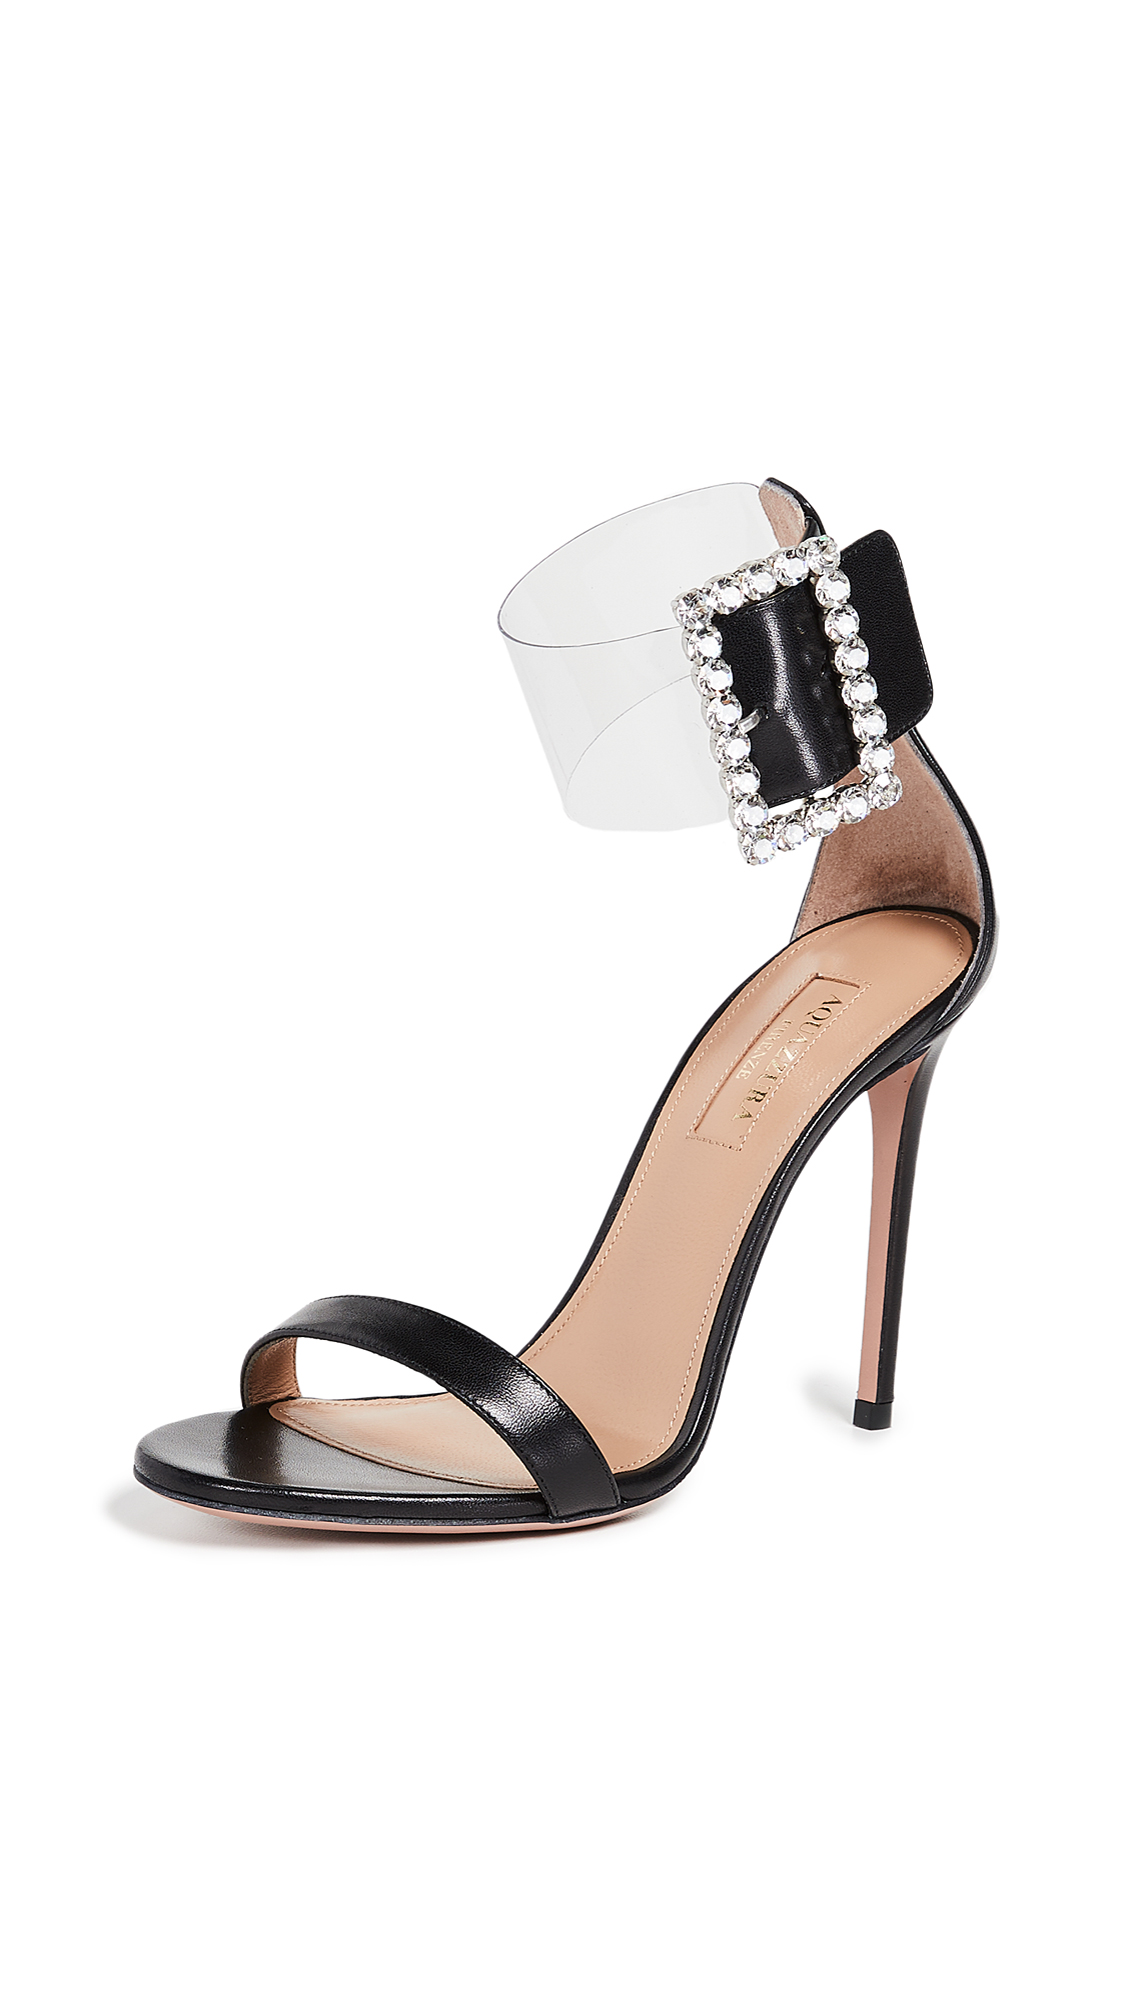 Aquazzura Casablanca Strass 105 Sandals